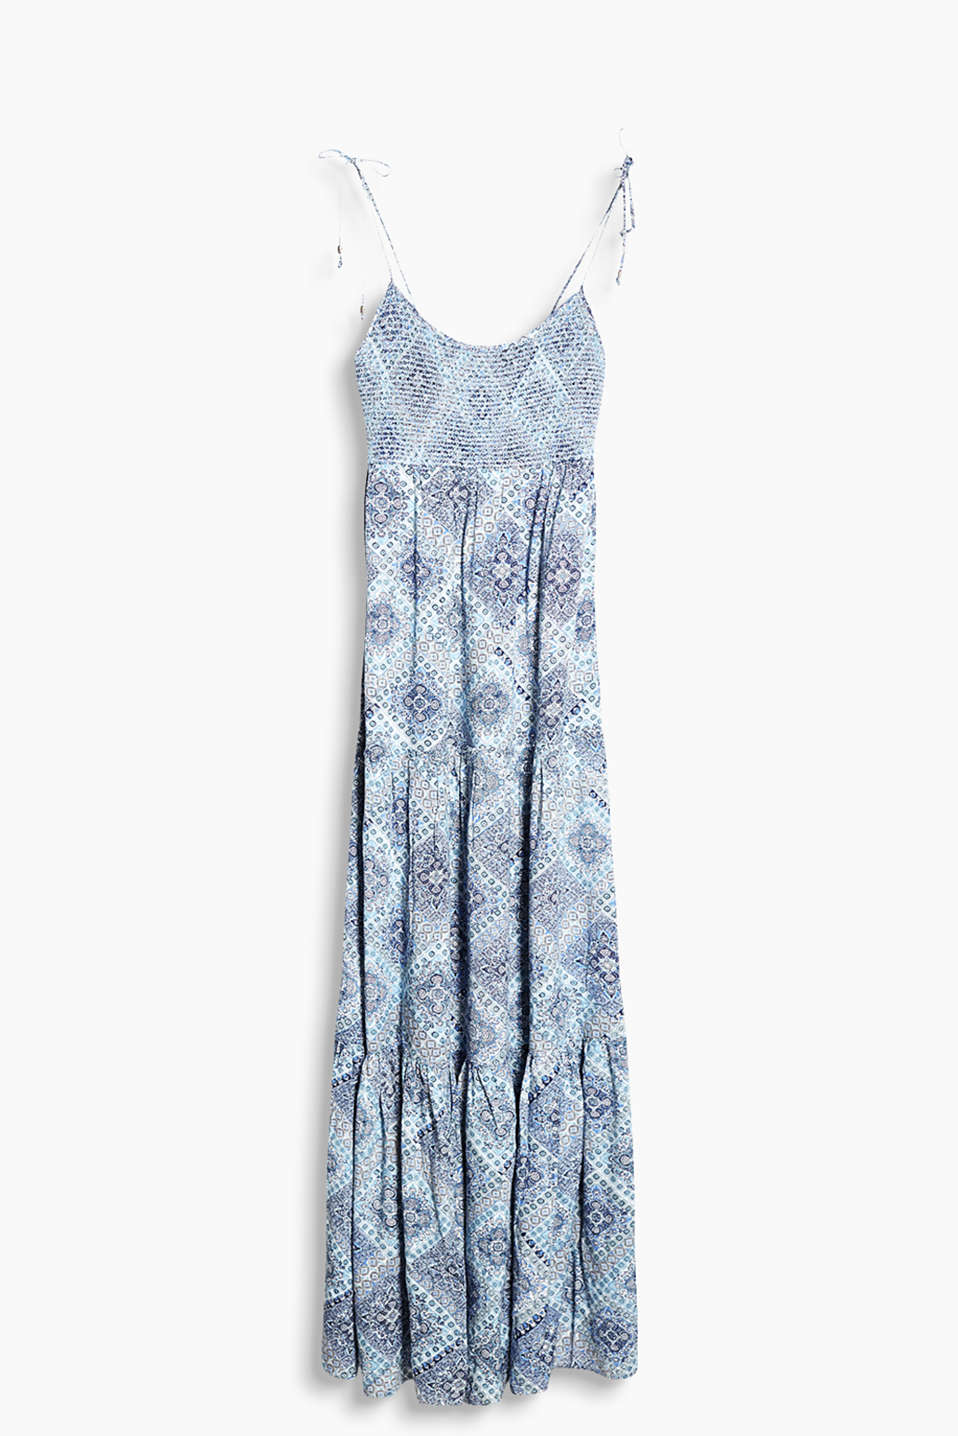 Flowing maxi dress with an ornamental pattern and a smocked bodice